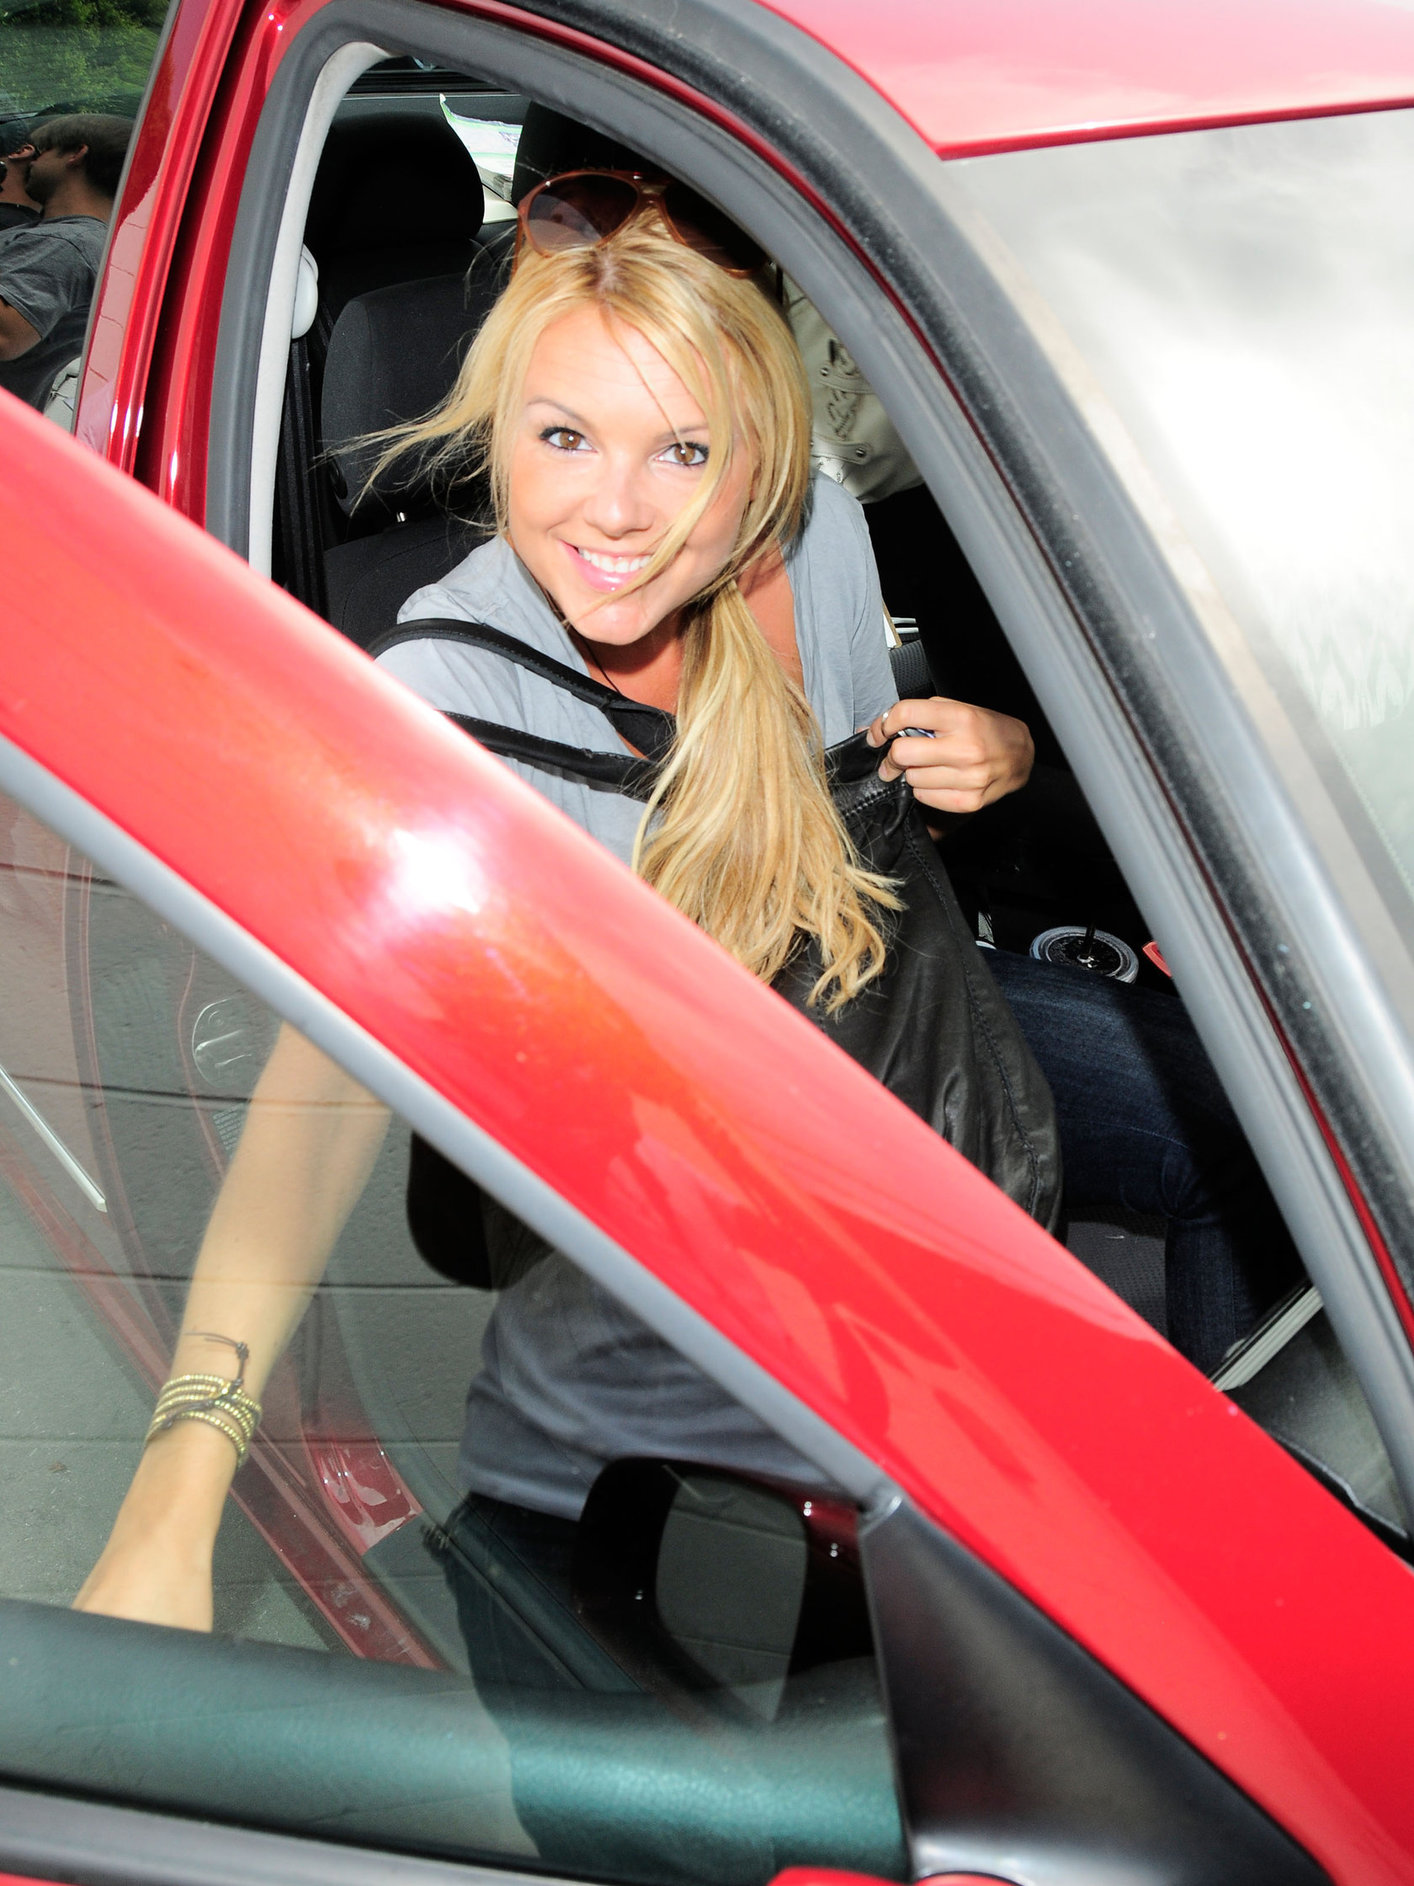 Ali Fedotowsky drops off her Mini Copper at Avon Rent a Car in Beverly Gills on July 1, 2010